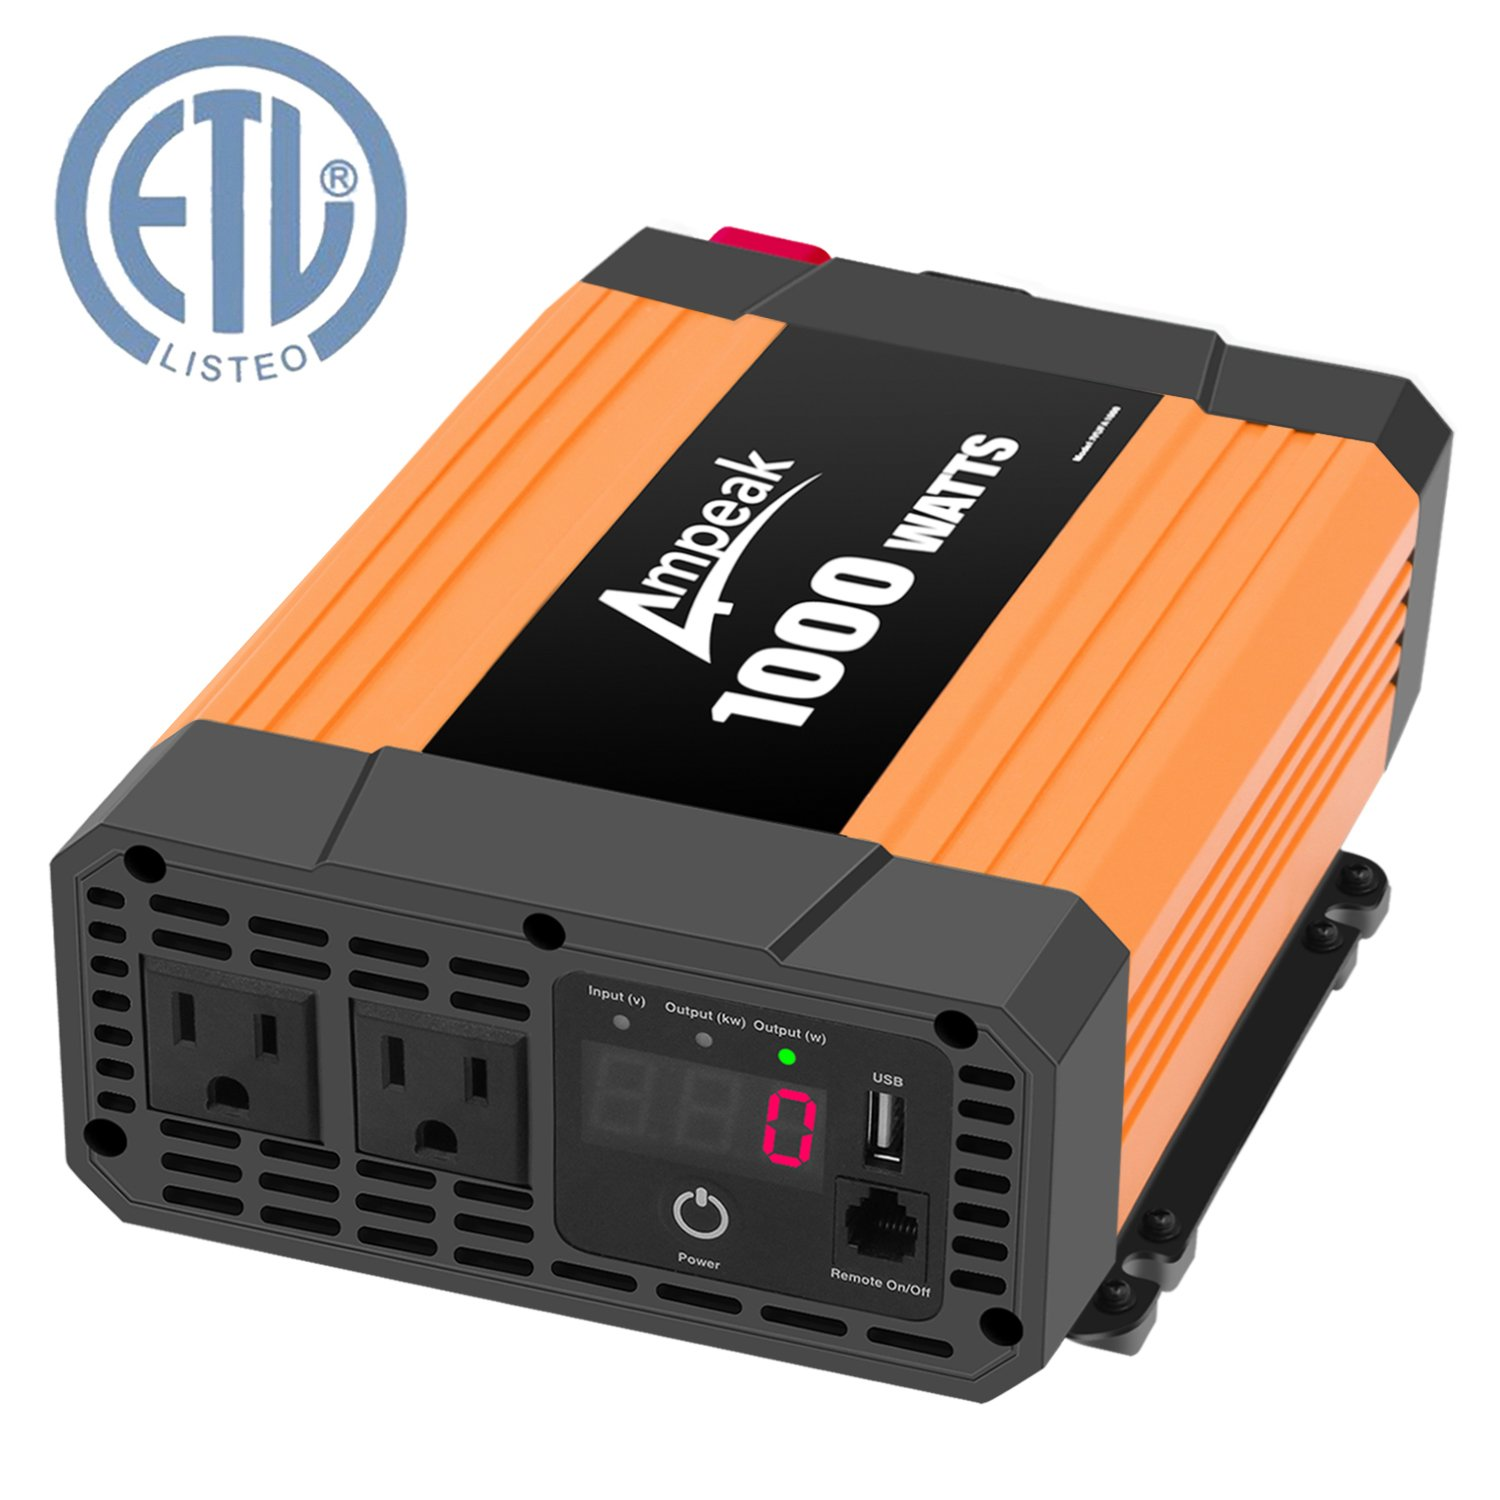 5 Best Power Inverter For Home 2021 [In-Depth Review] 5